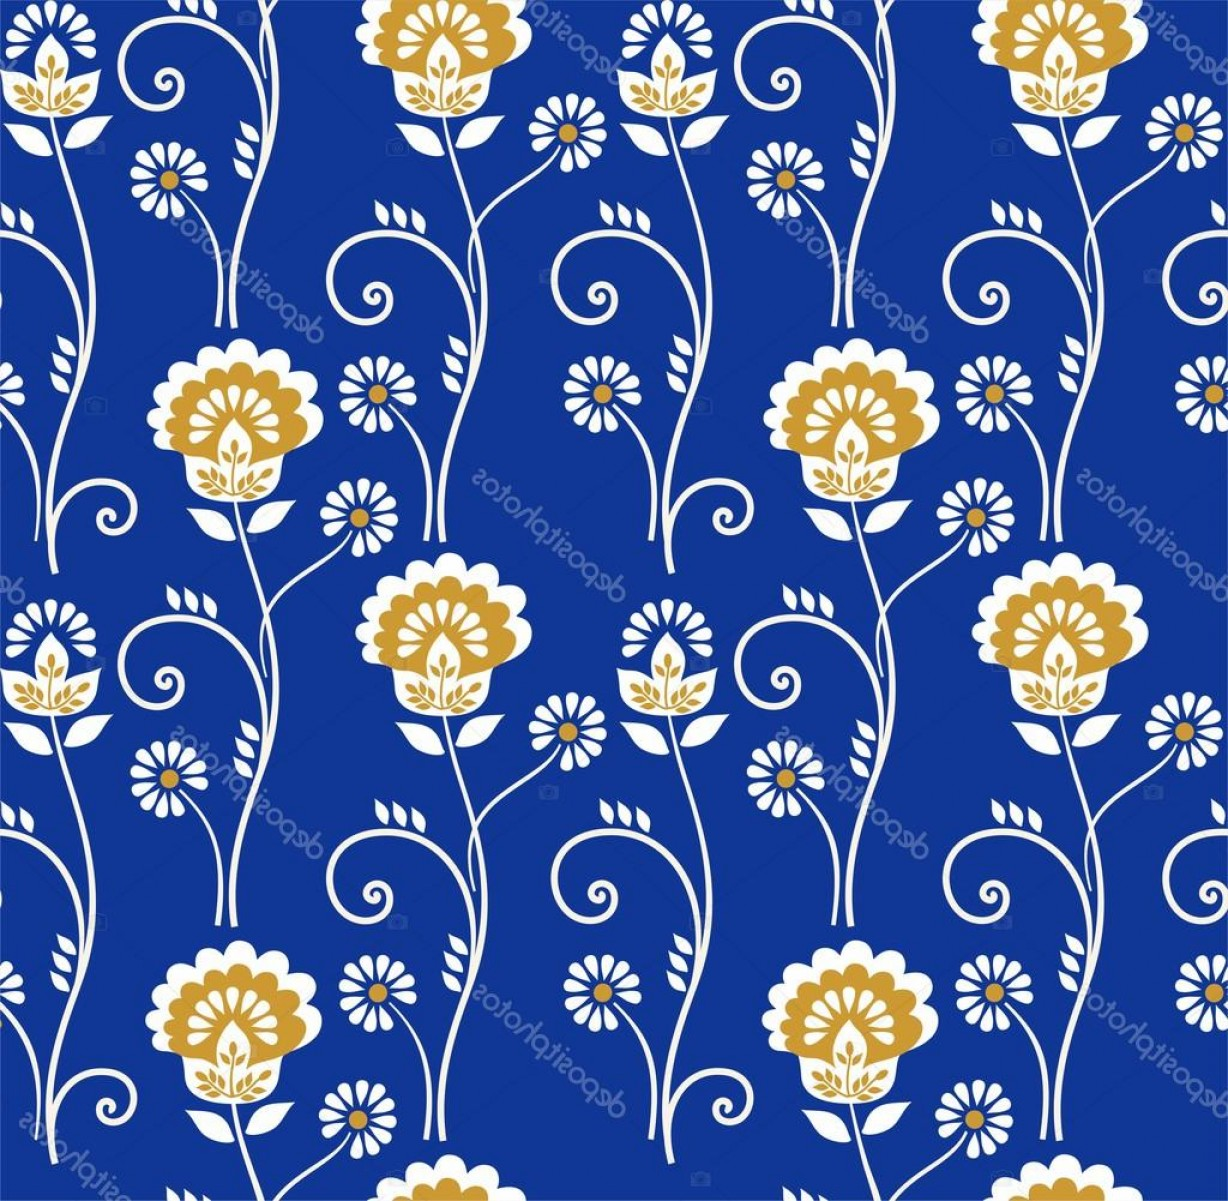 Gold And Blue Flower Vector: Stock Illustration Floral Pattern Seamless Golden Flowers